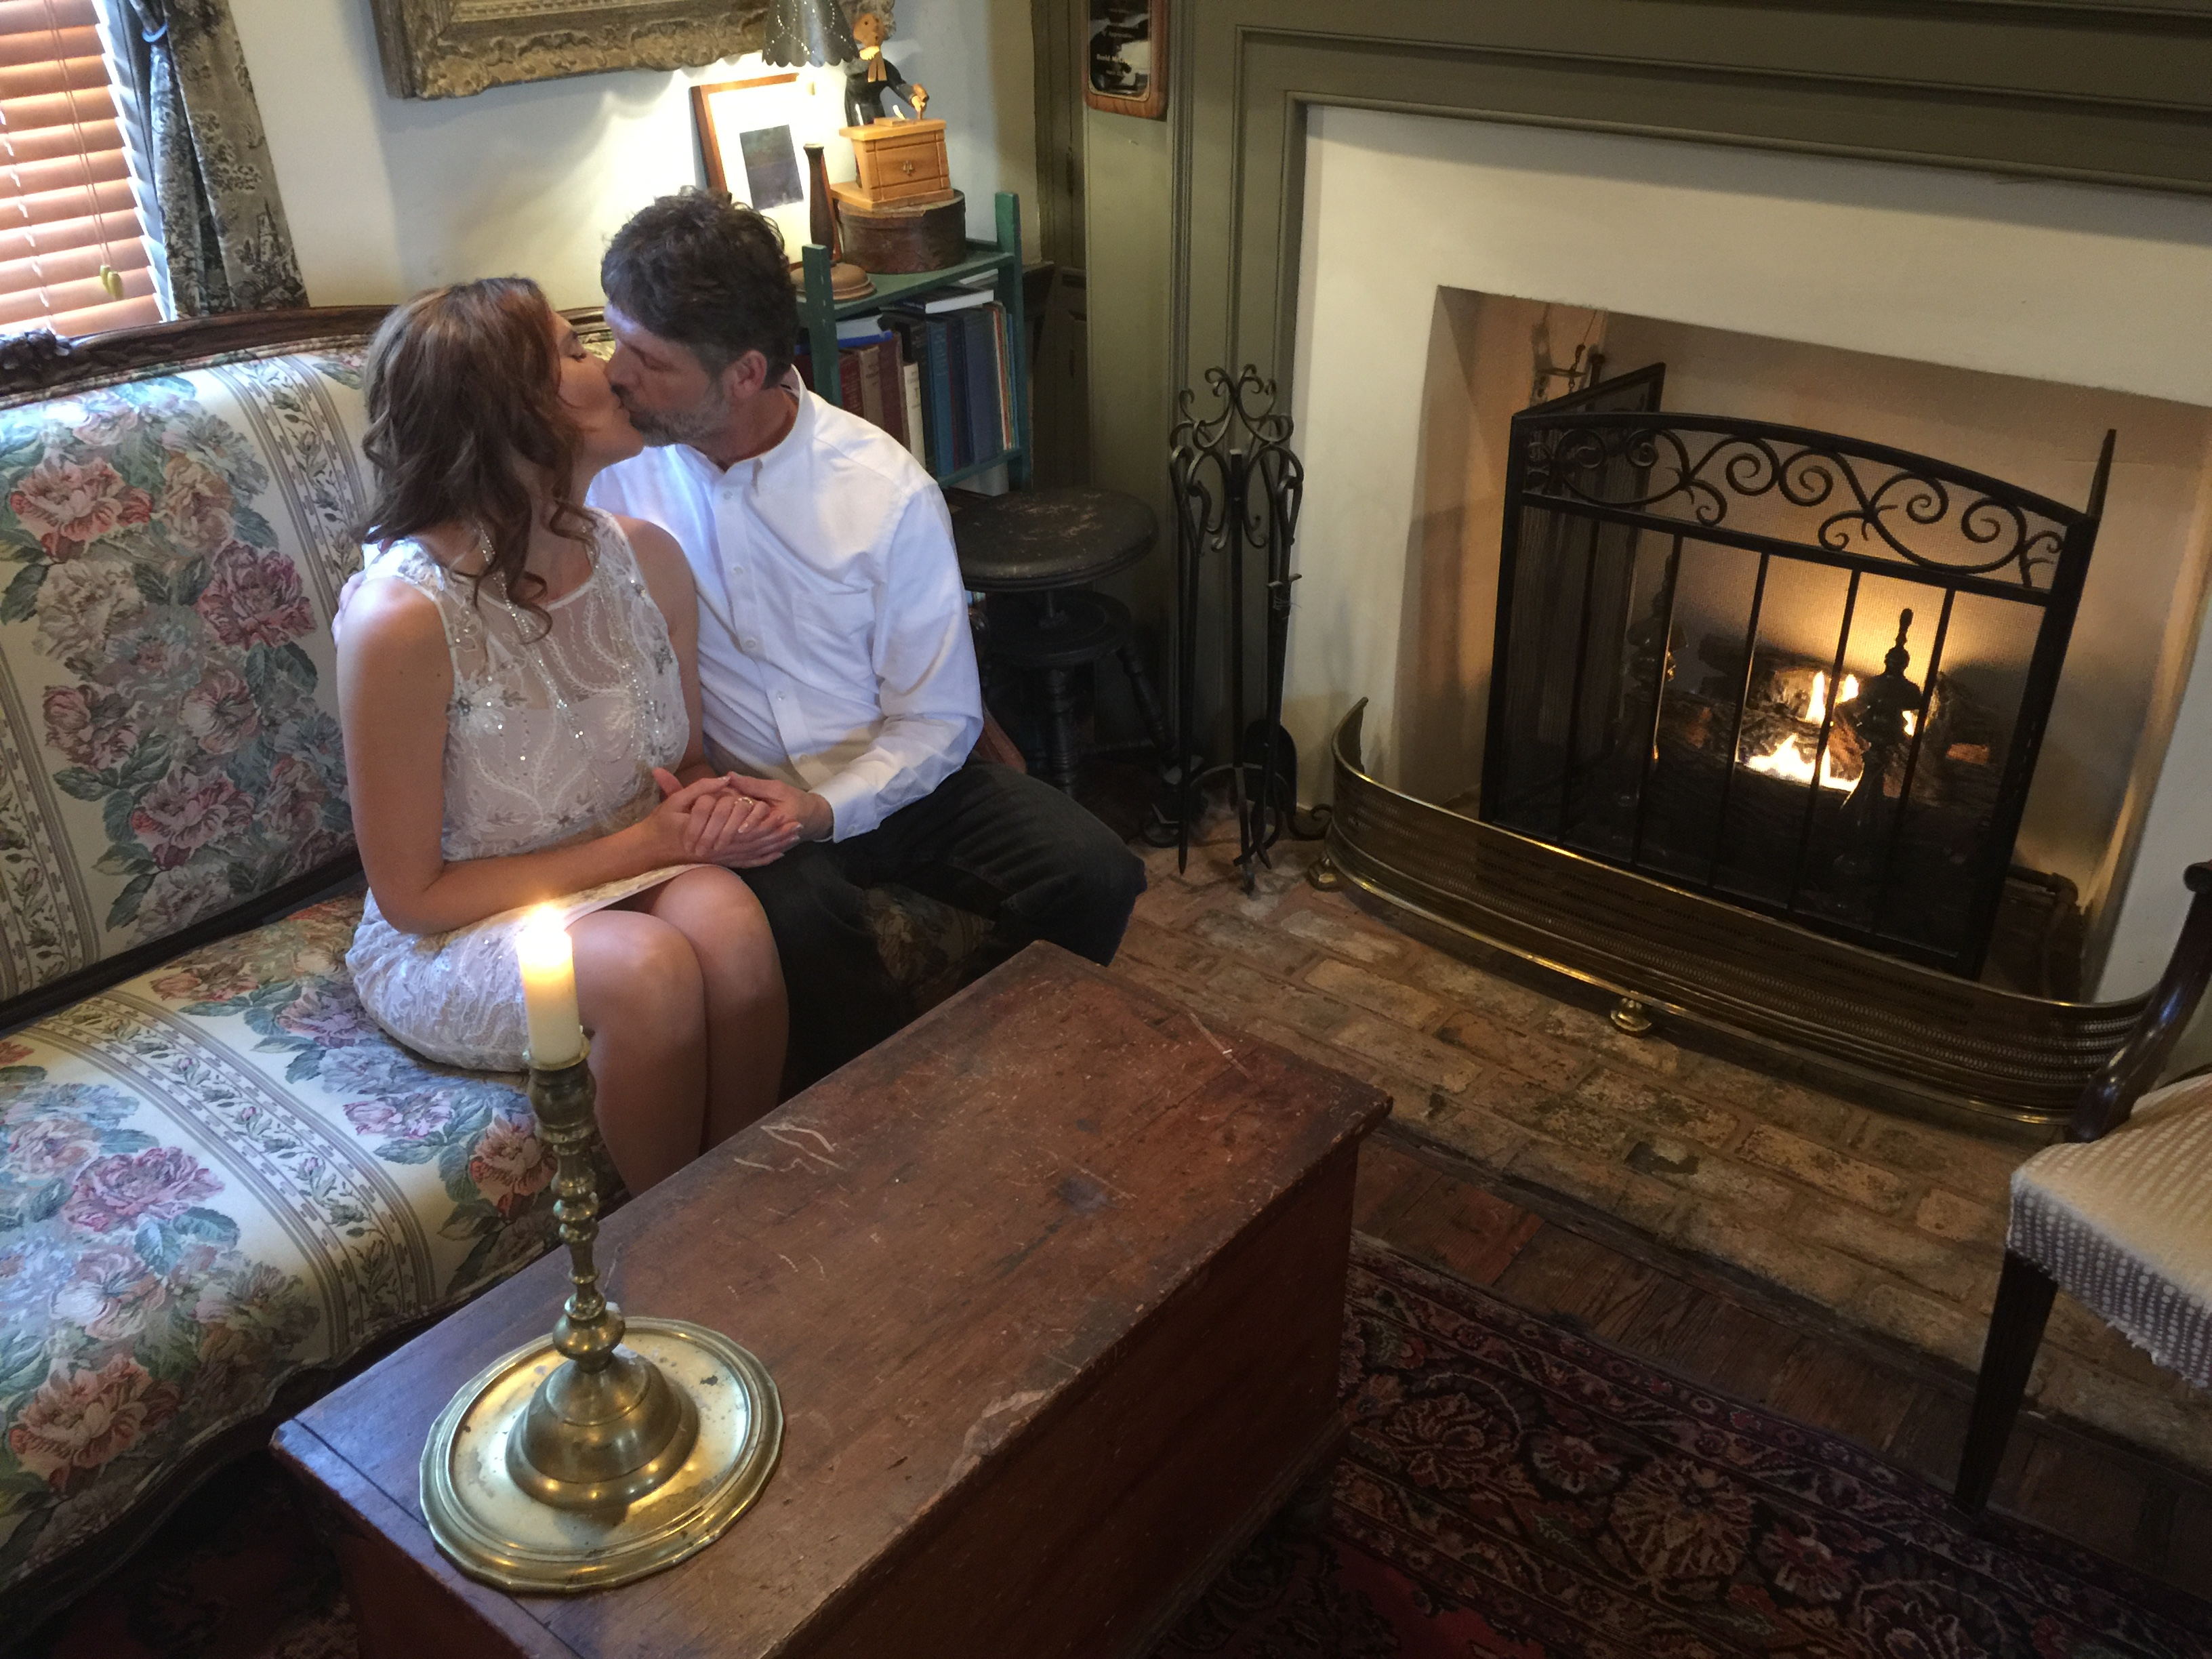 Fast Affordable $39 00 Marriages Same Day Winchester Virginia